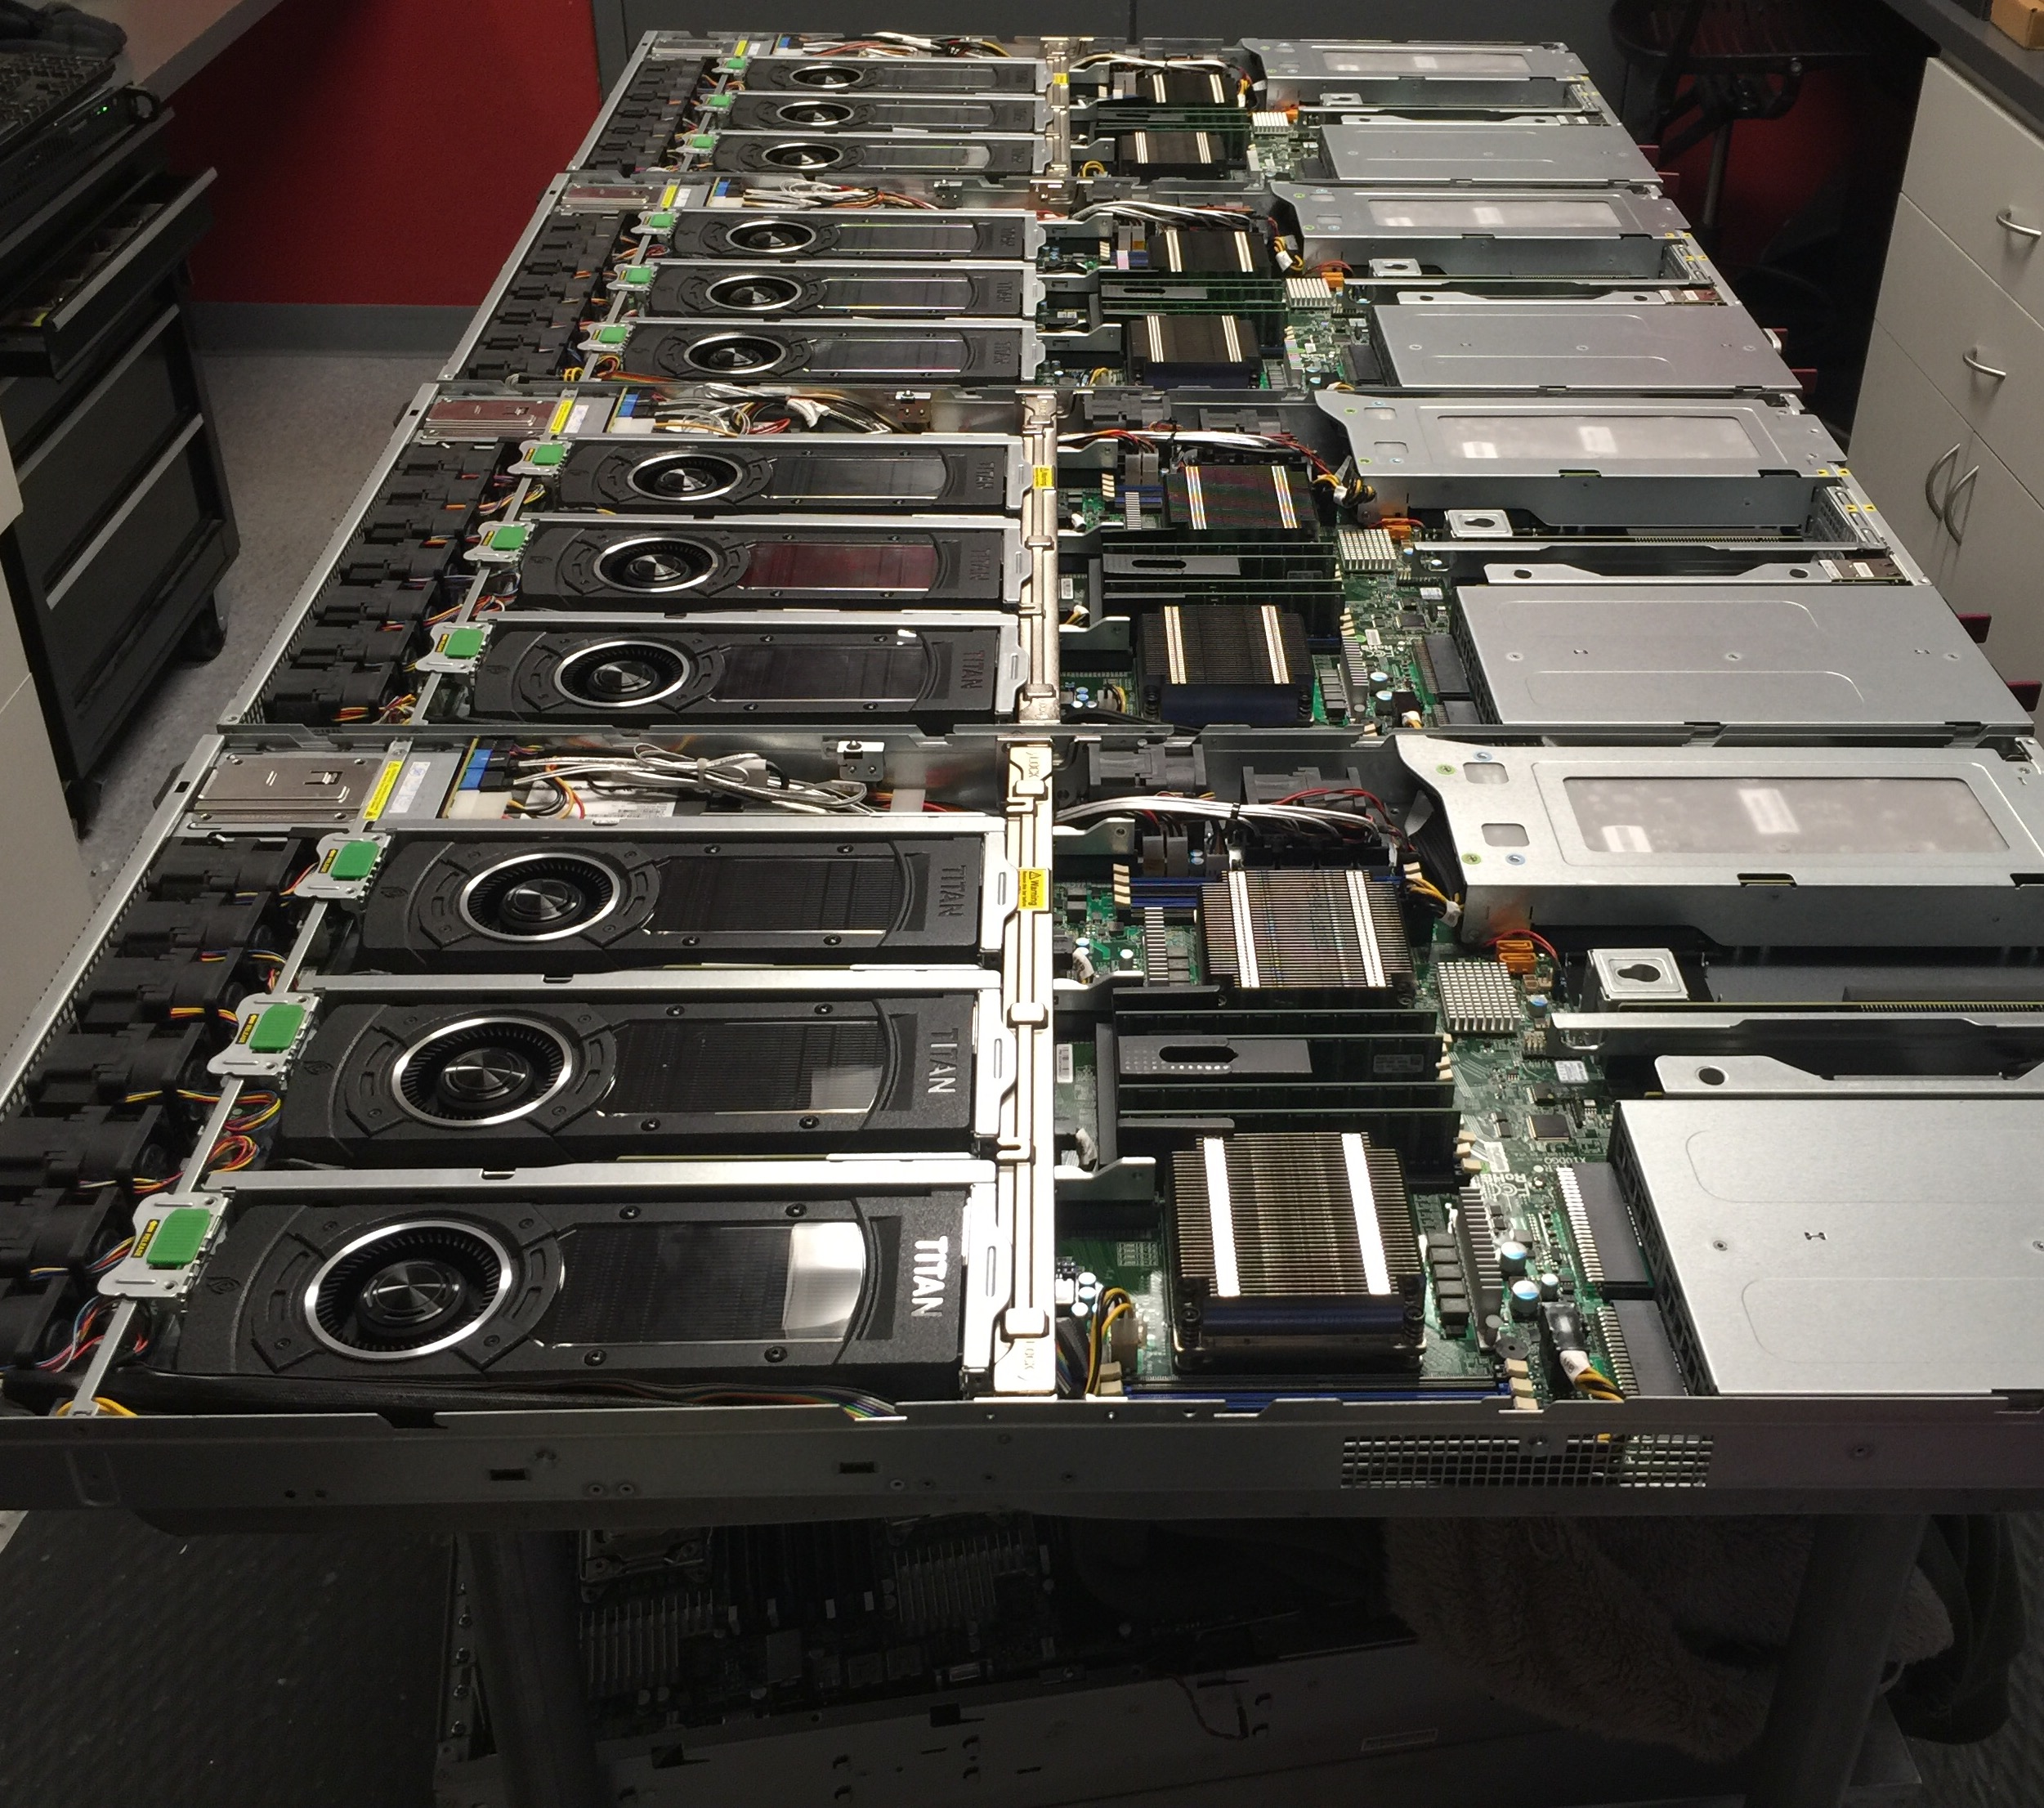 Rows of opened servers receiving maintenance